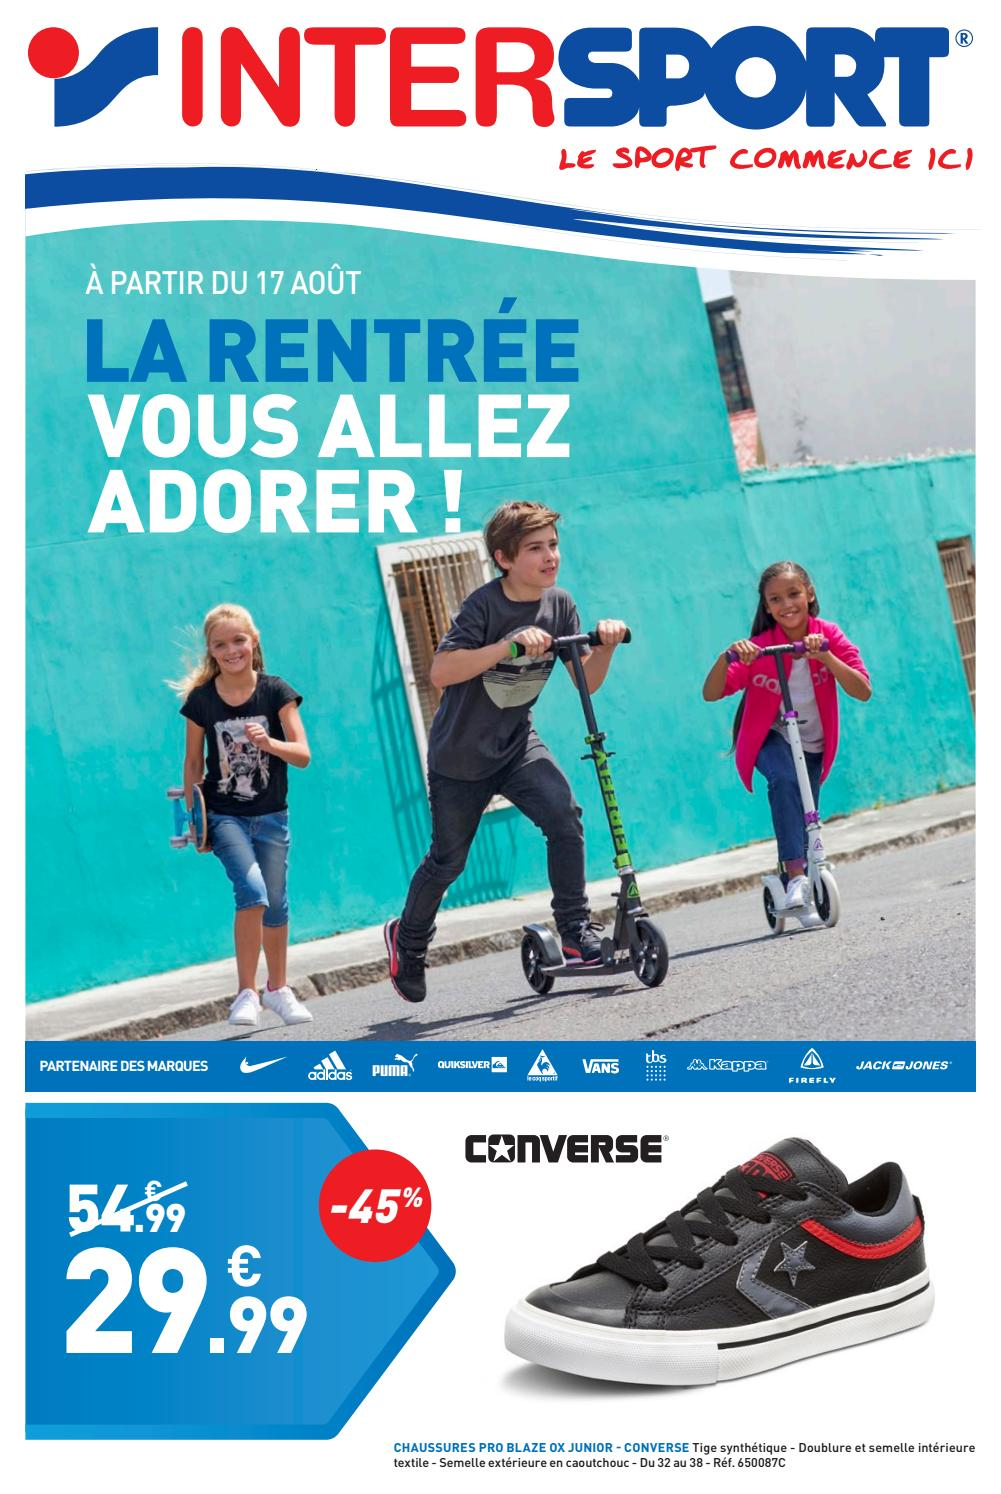 Issuu PagesBy Rentrée Intersport France Loisirs12 Nwm0v8n